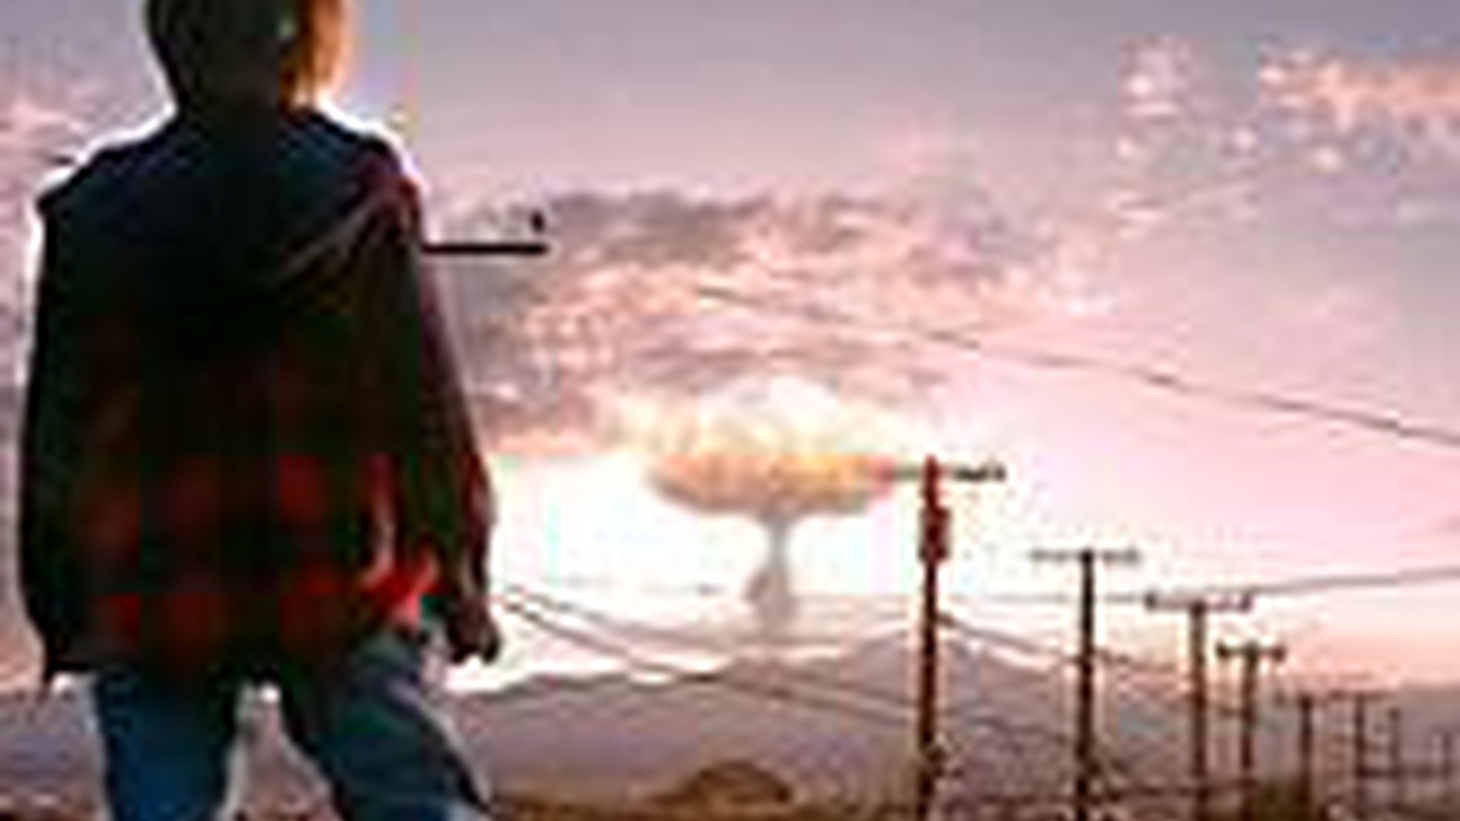 You know, I remember when bombs on TV were just lousy shows. But now some popular dramas are unleashing their own nuclear arsenal ... and it's against America, from sea to shining sea.